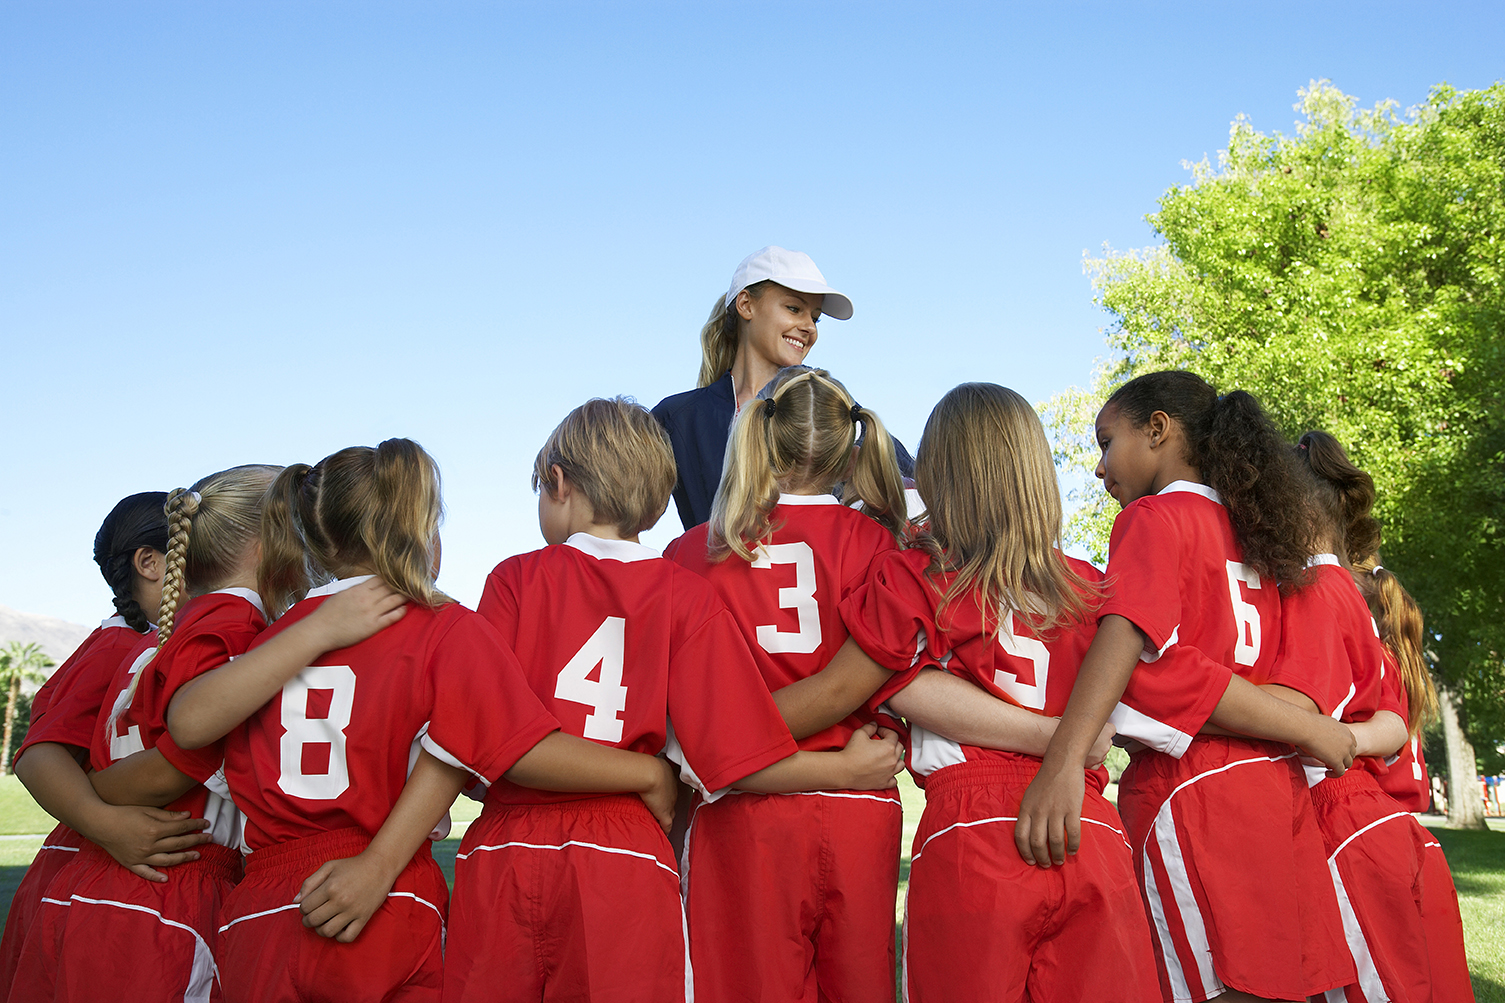 Qualities of Leadership: 5 Ideas for Sports Groups